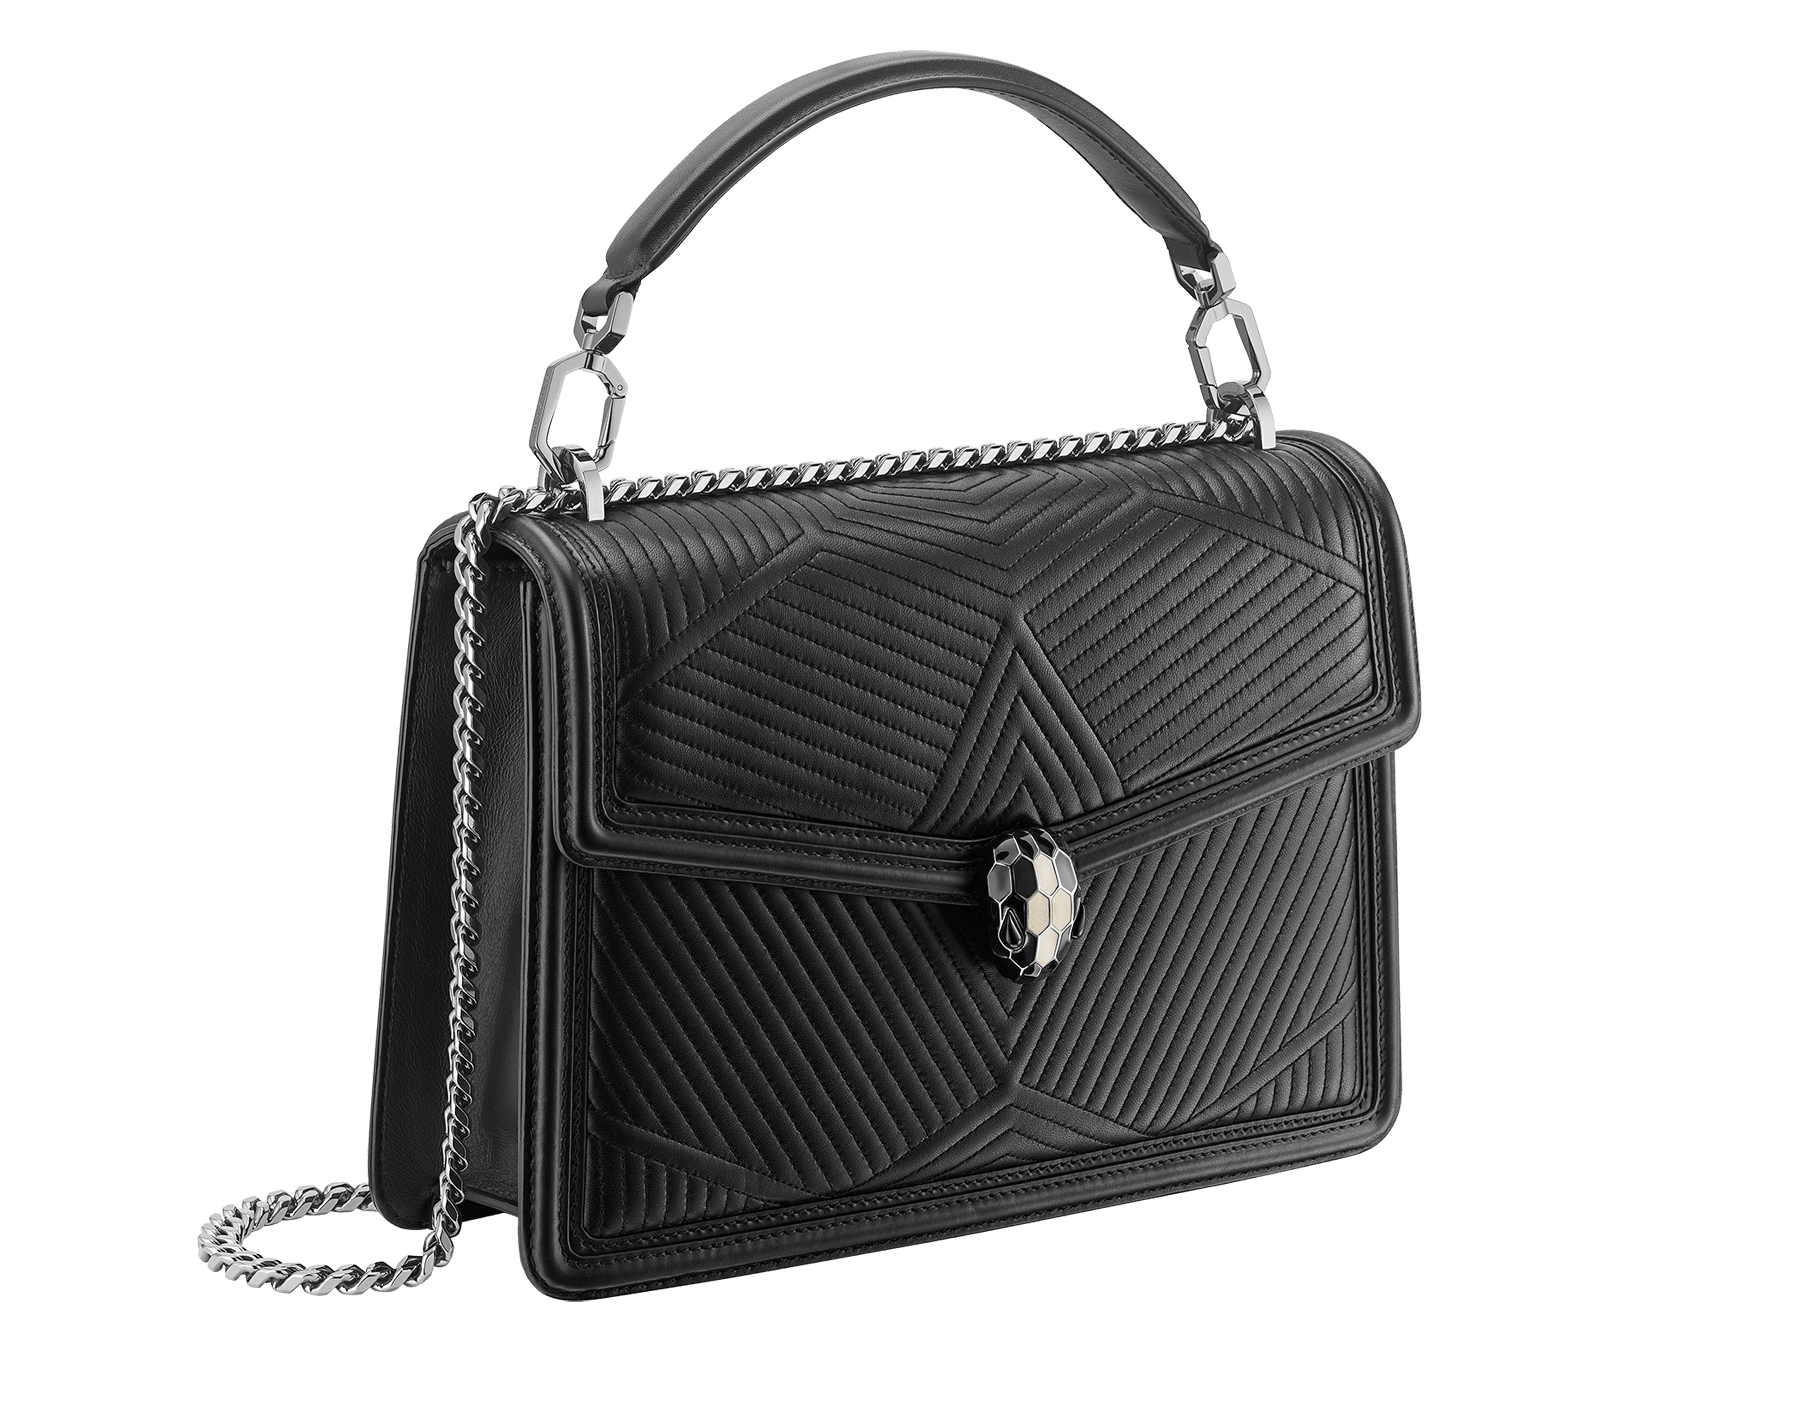 """Serpenti Diamond Blast"" shoulder bag in black quilted nappa leather body and black calf leather frames. Iconic snakehead closure in dark ruthenium plated brass enriched with black and white enamel and black onyx eyes. 973-FQDa image 2"